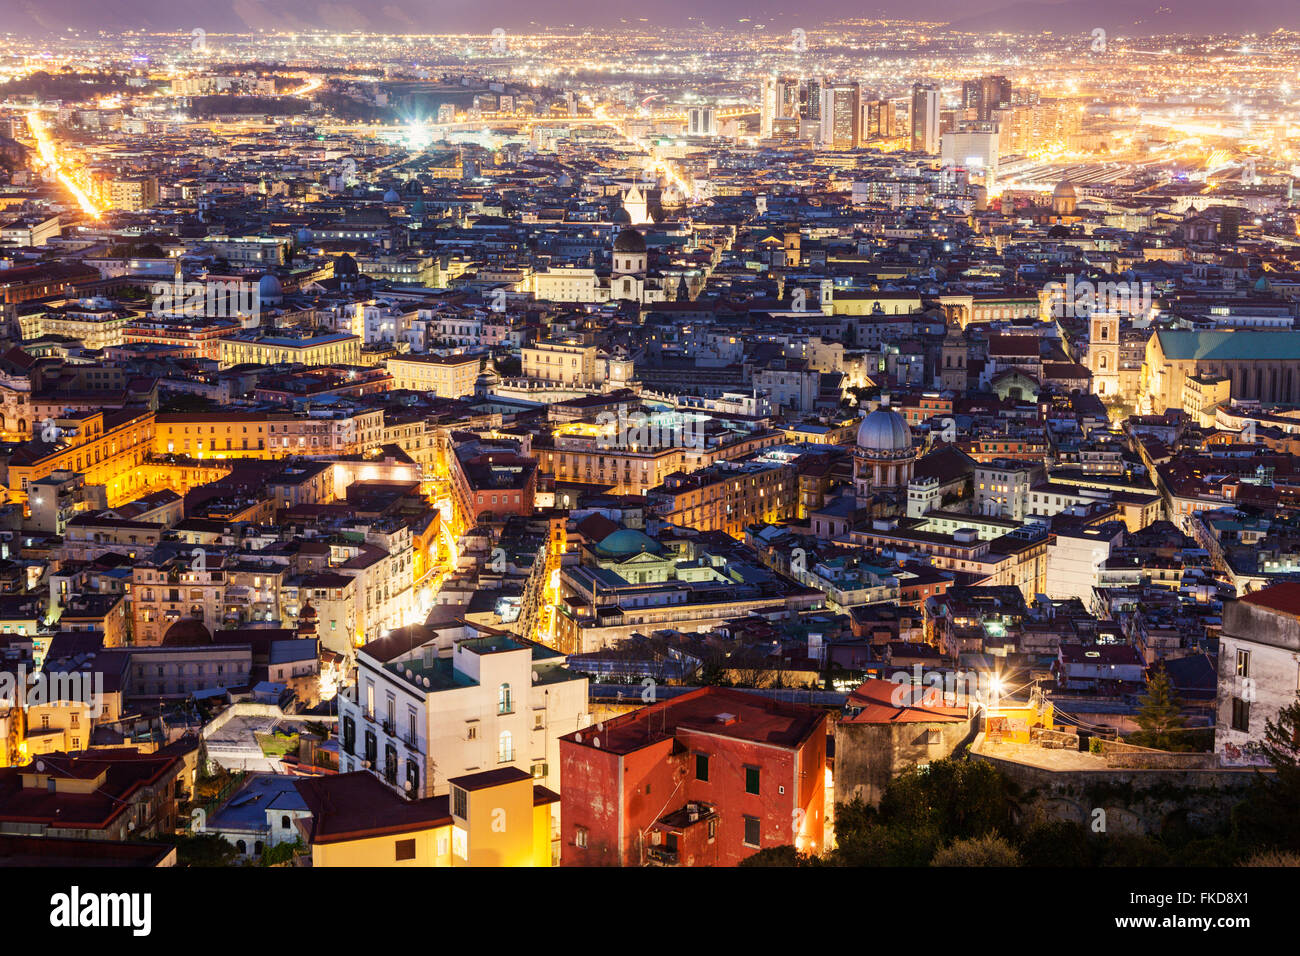 Panorama of city at night - Stock Image